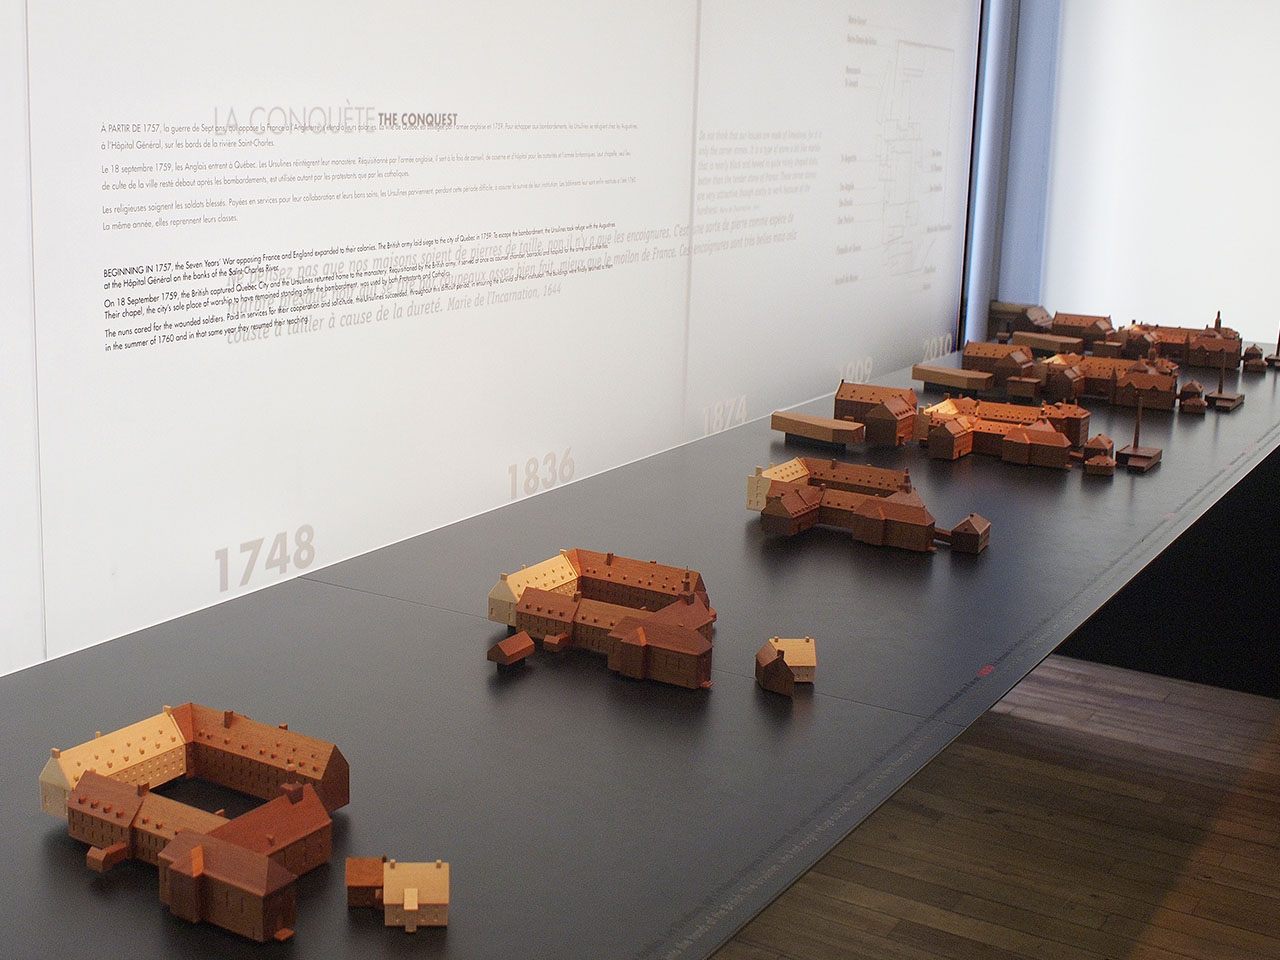 Wooden models of buildings